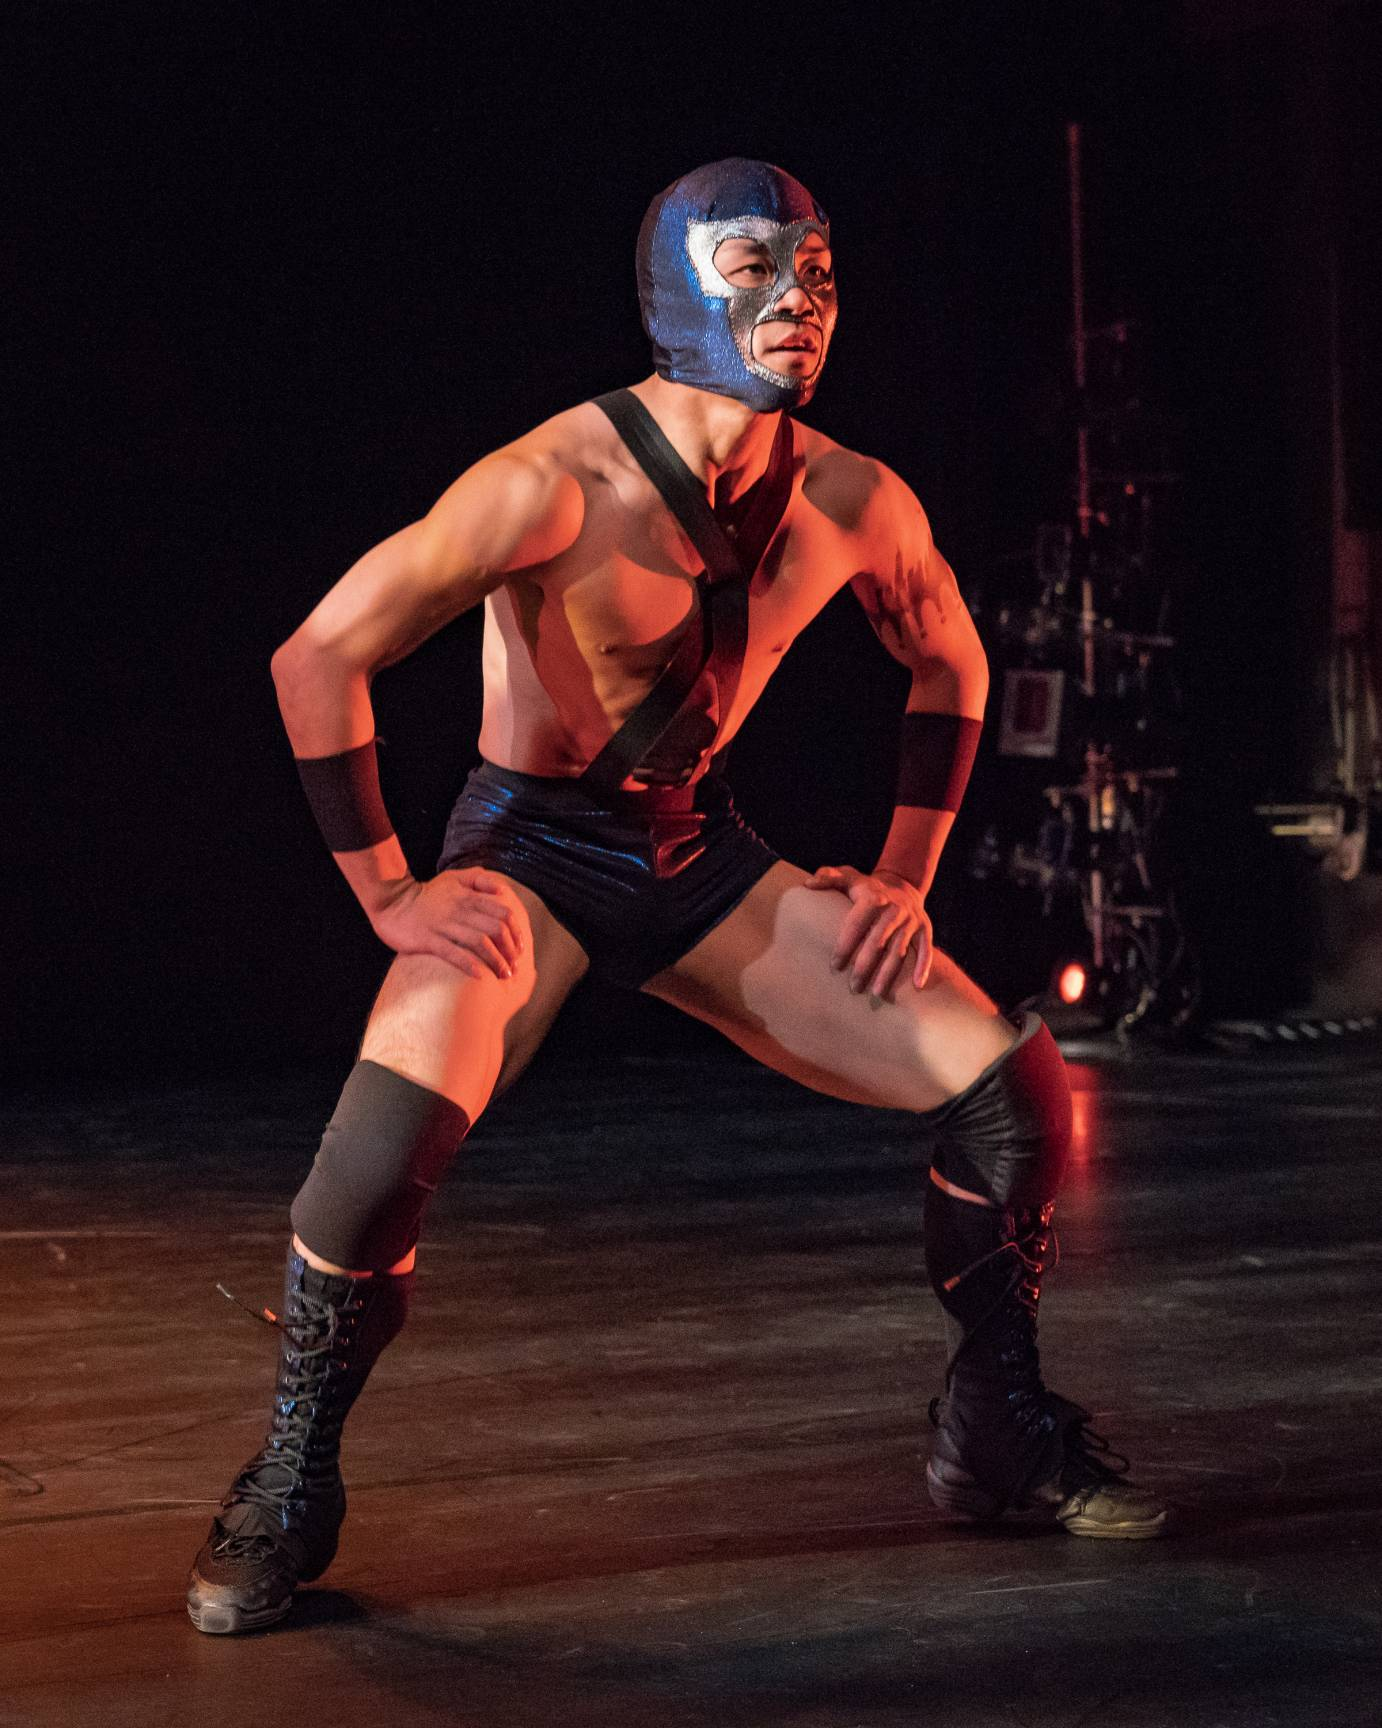 A man in a wrestling mask assumes a squat position looking out to the audience